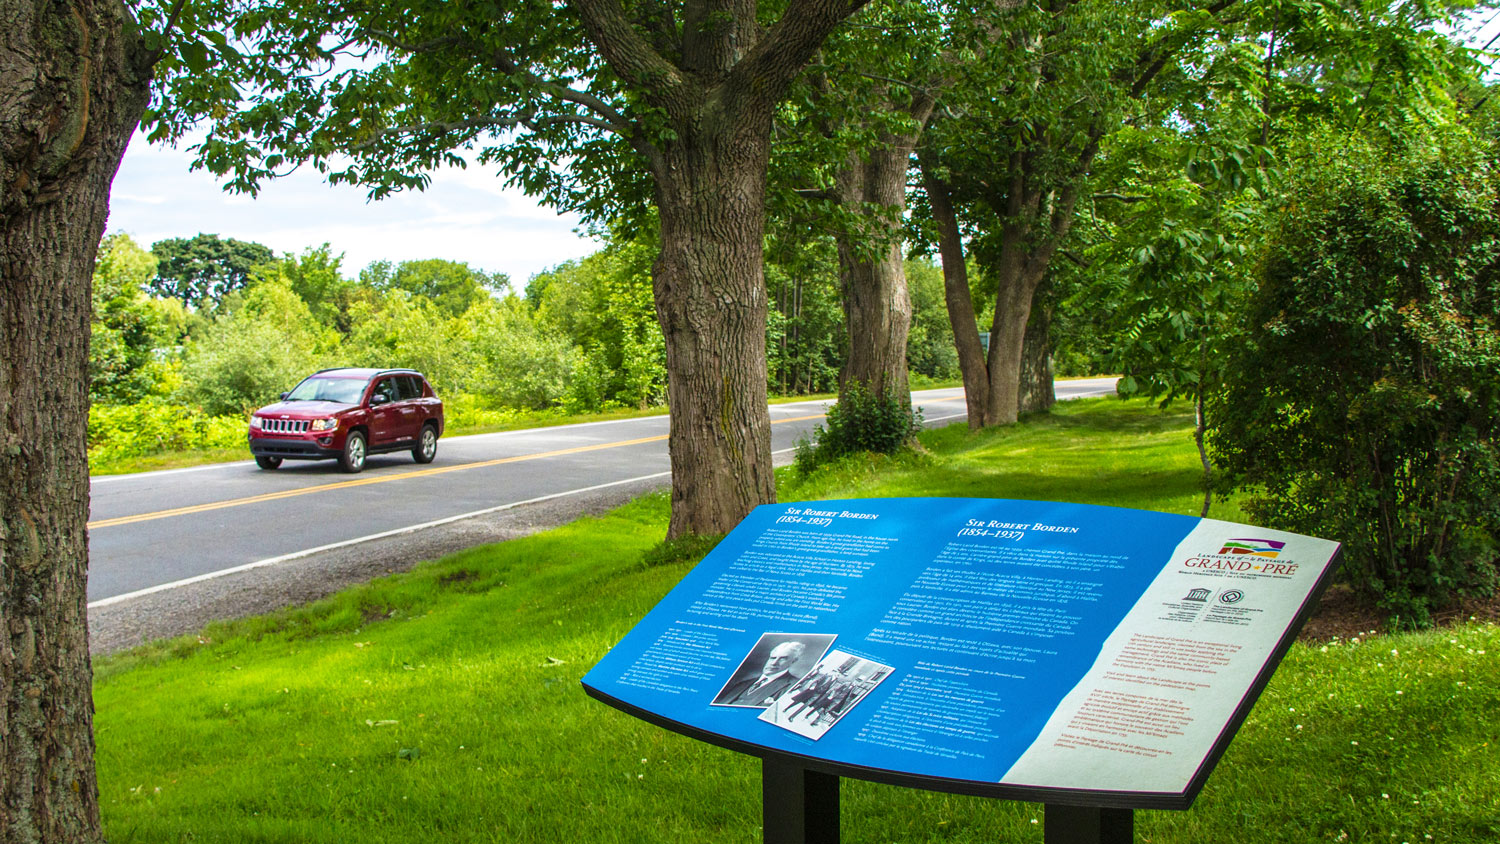 INTERPRETIVE SIGN Interpretive panels highlight areas of historical, cultural, natural or geographic significance.